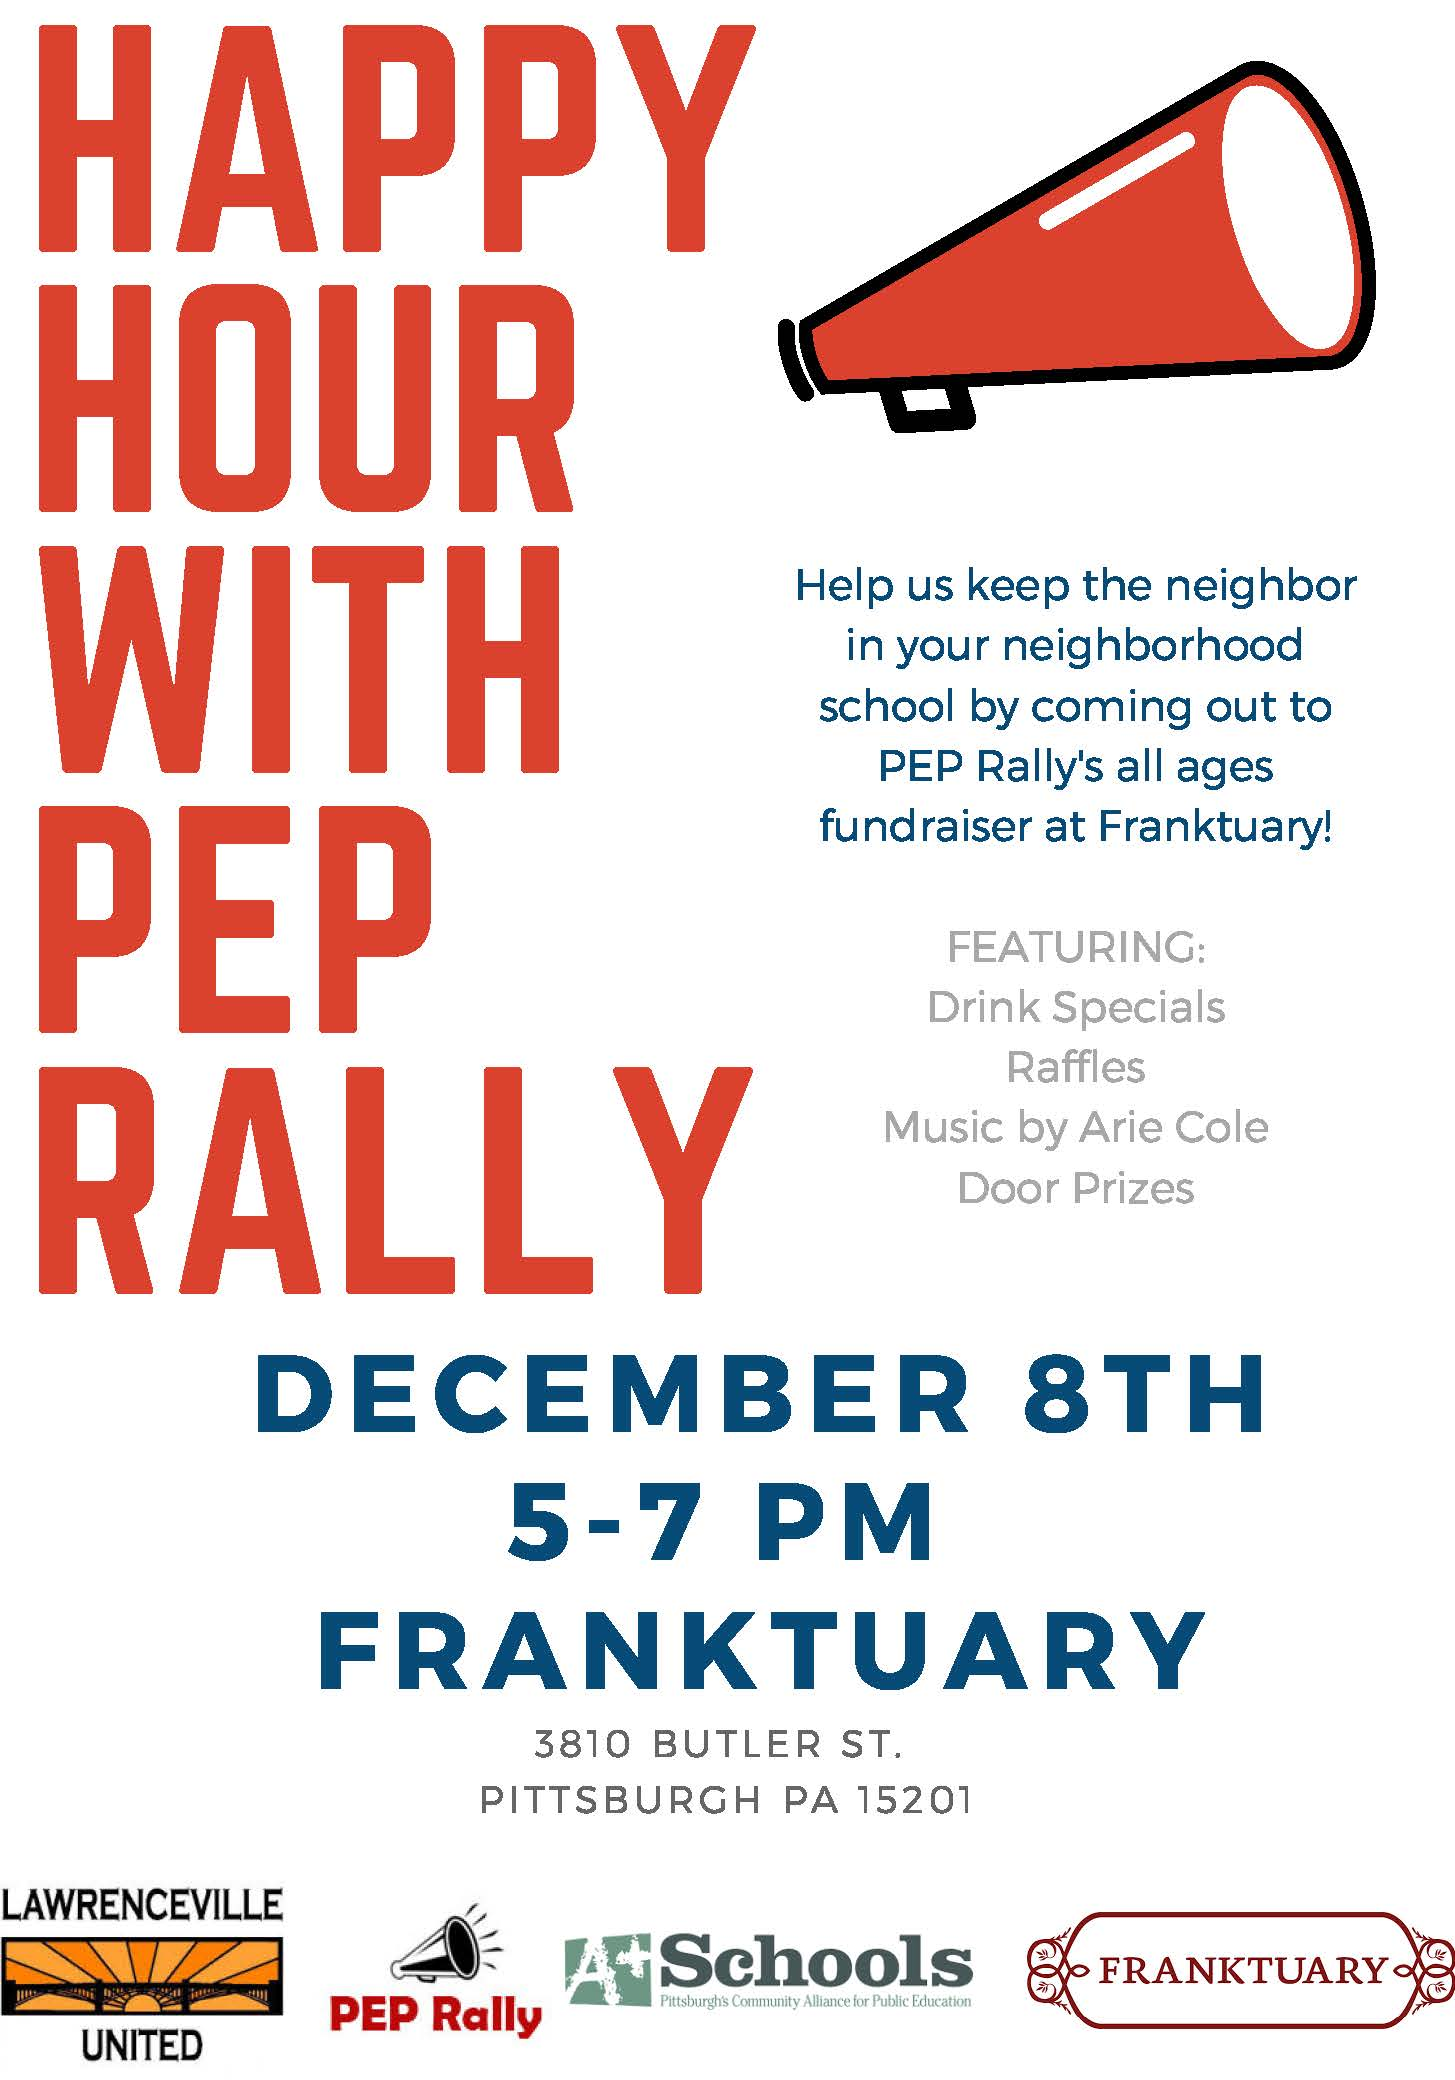 Join us for a PEP Rally Happy Hour!